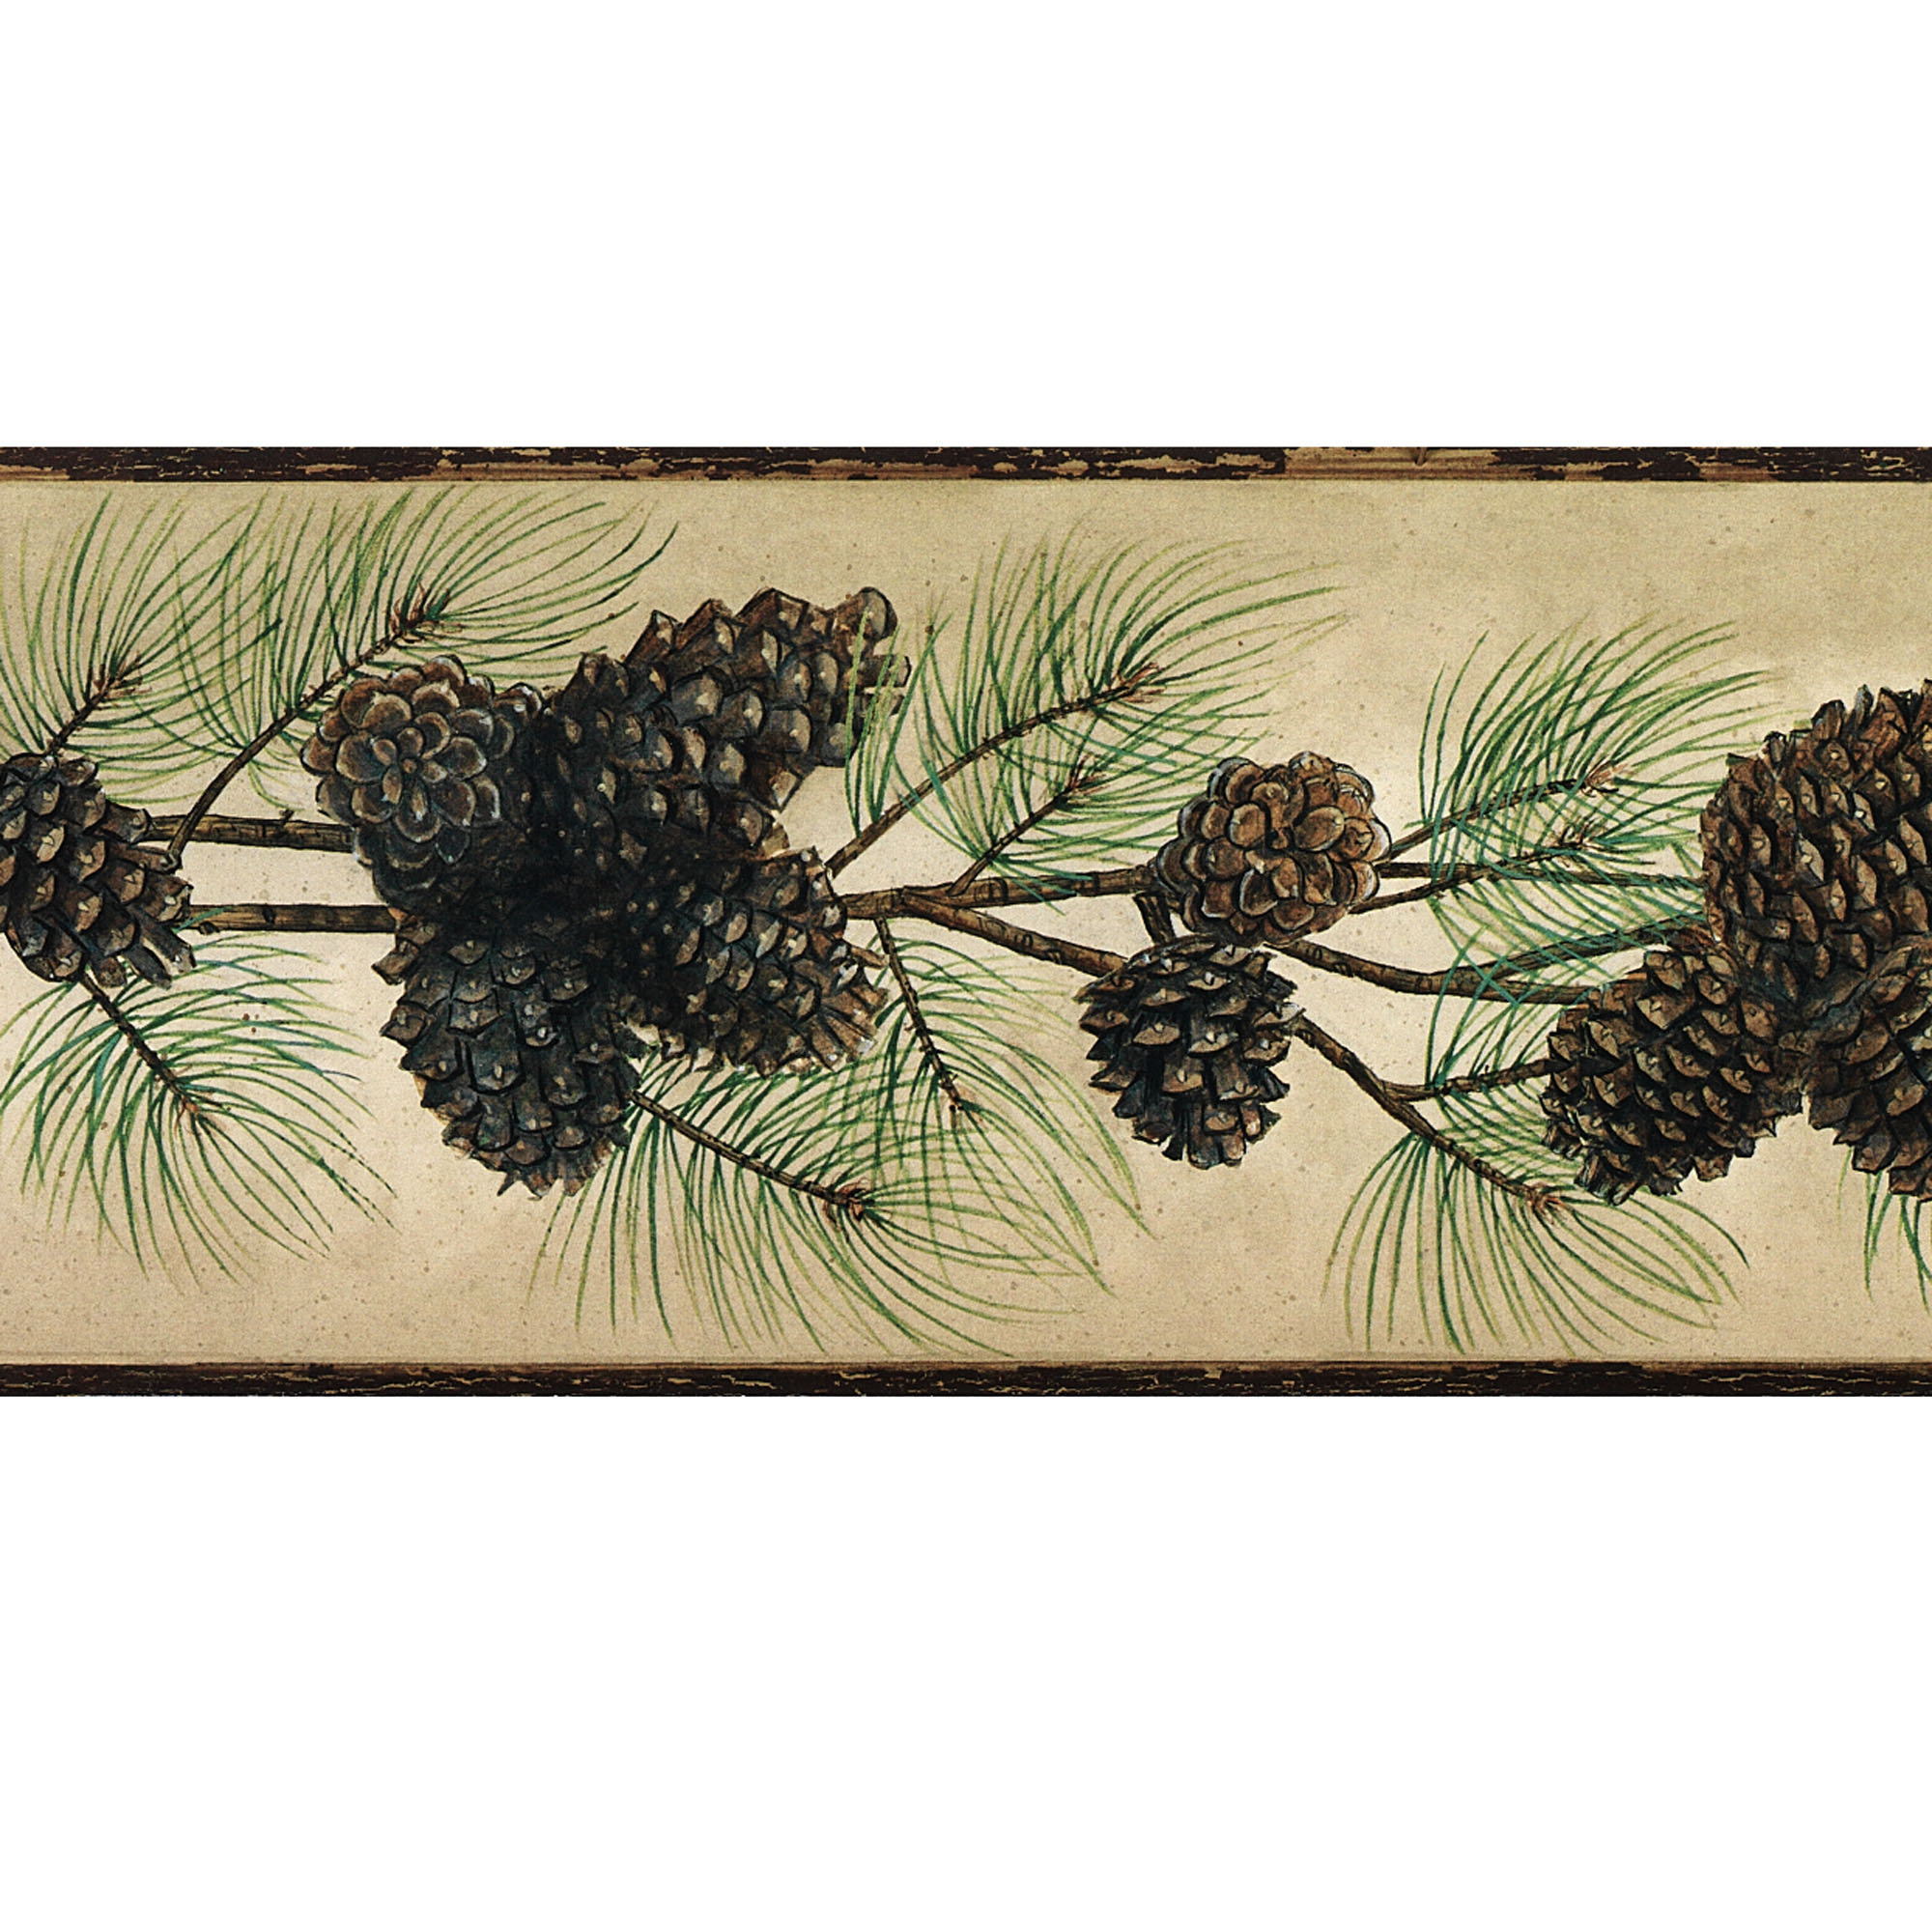 Rustic Pine Cone Wallpaper Border Multi Earth 2000x2000